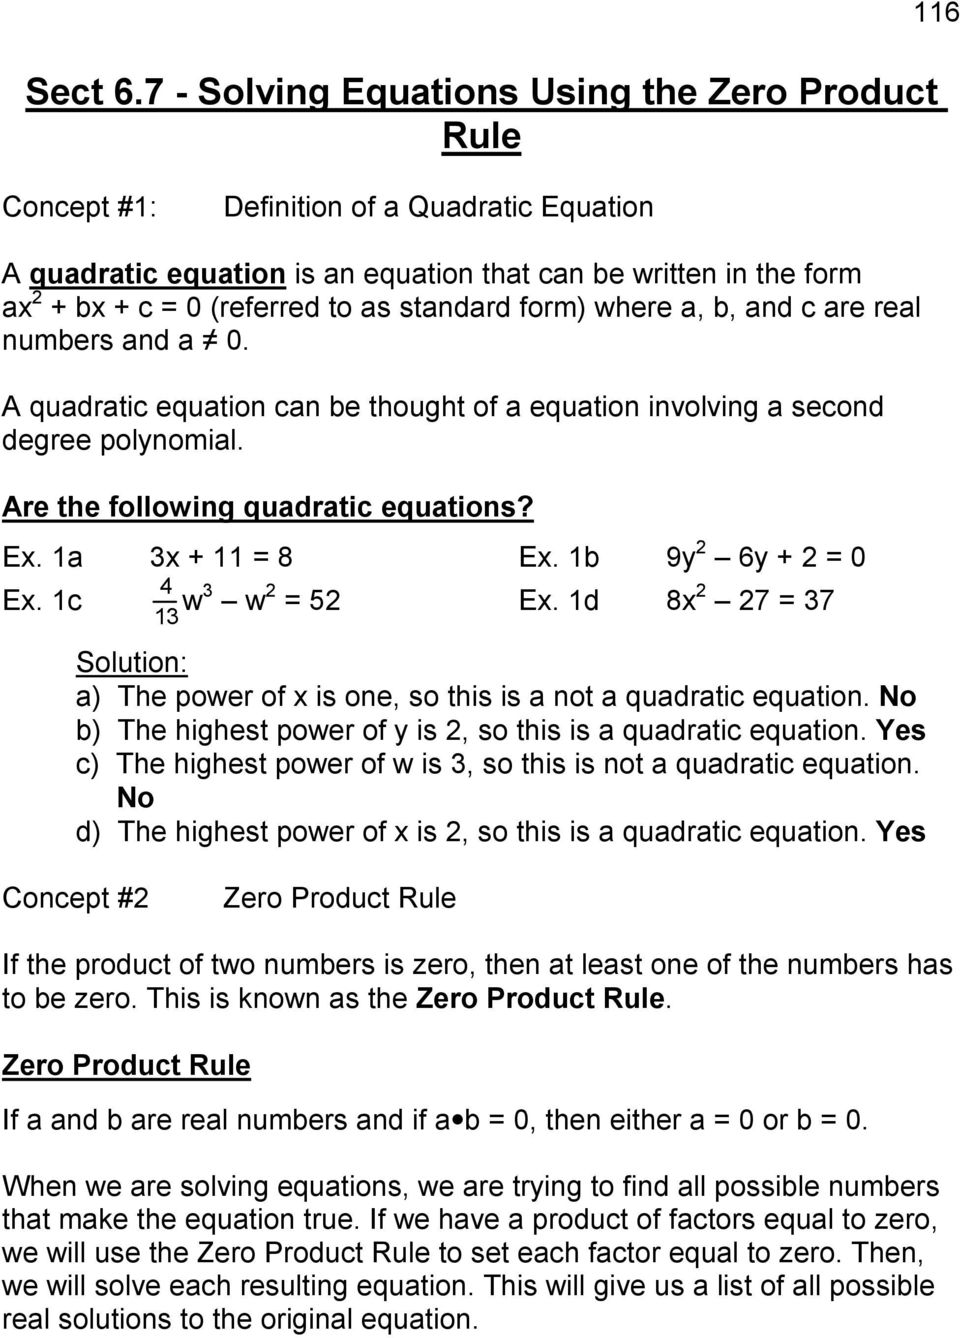 as standard form) where a, b, and c are real numbers and a 0. A quadratic equation can be thought of a equation involving a second degree polynomial. Are the following quadratic equations? Ex.